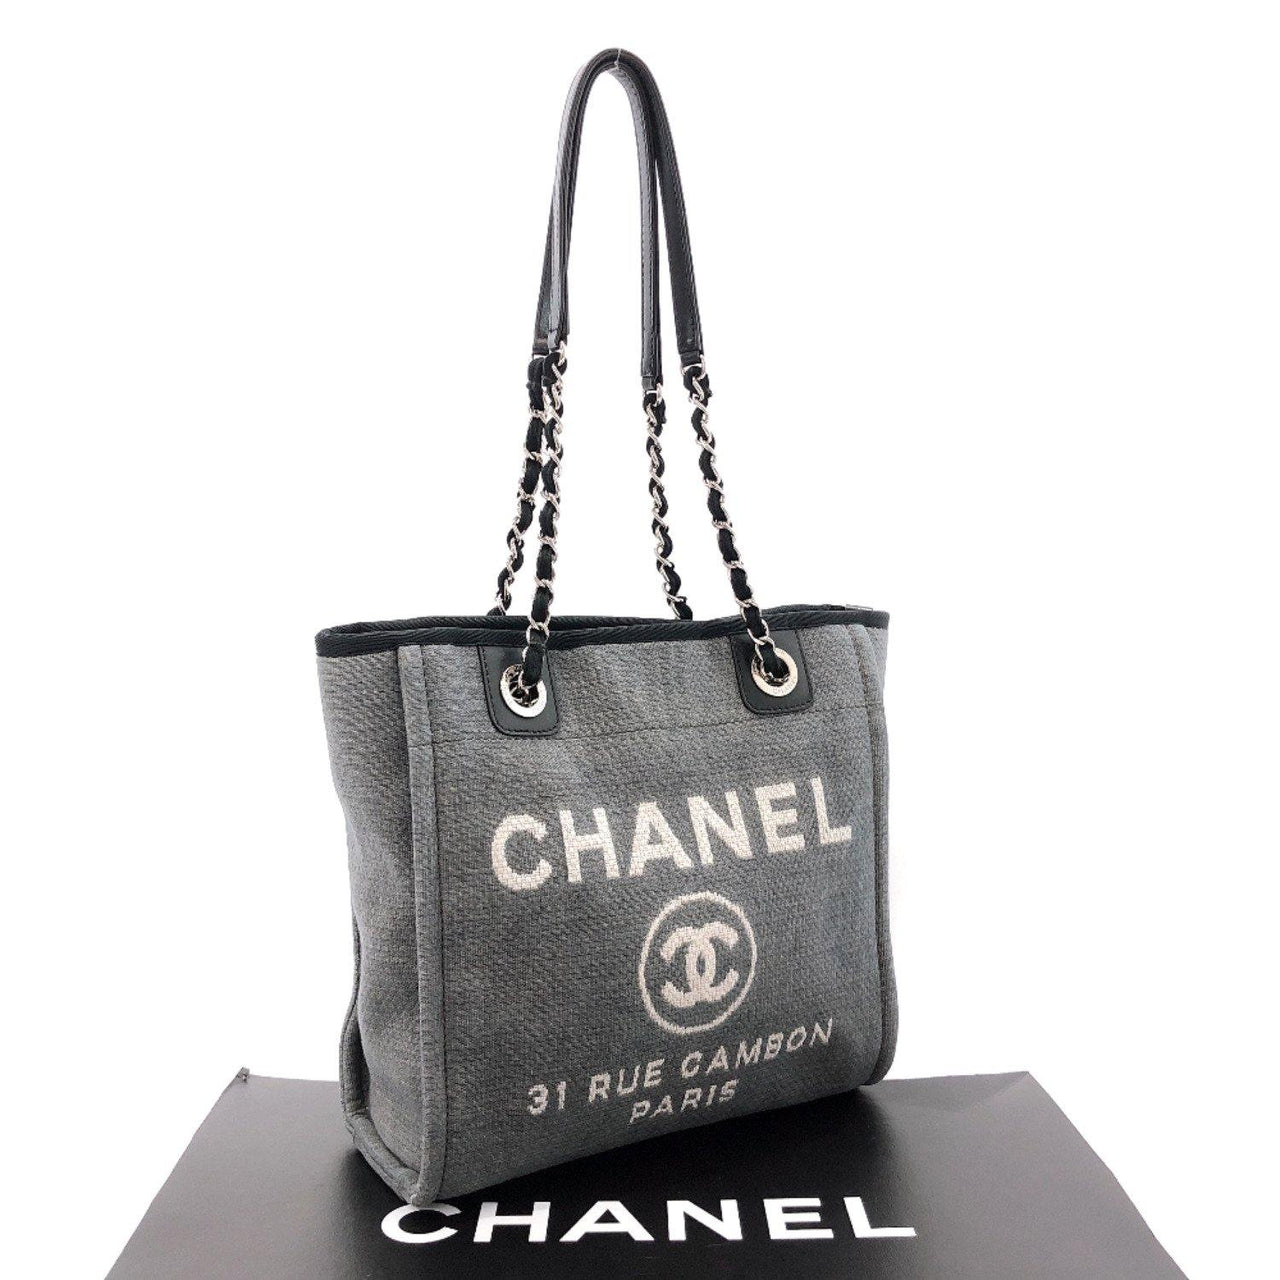 CHANEL Tote Bag Deauville PM canvas/leather gray black Women Used - JP-BRANDS.com